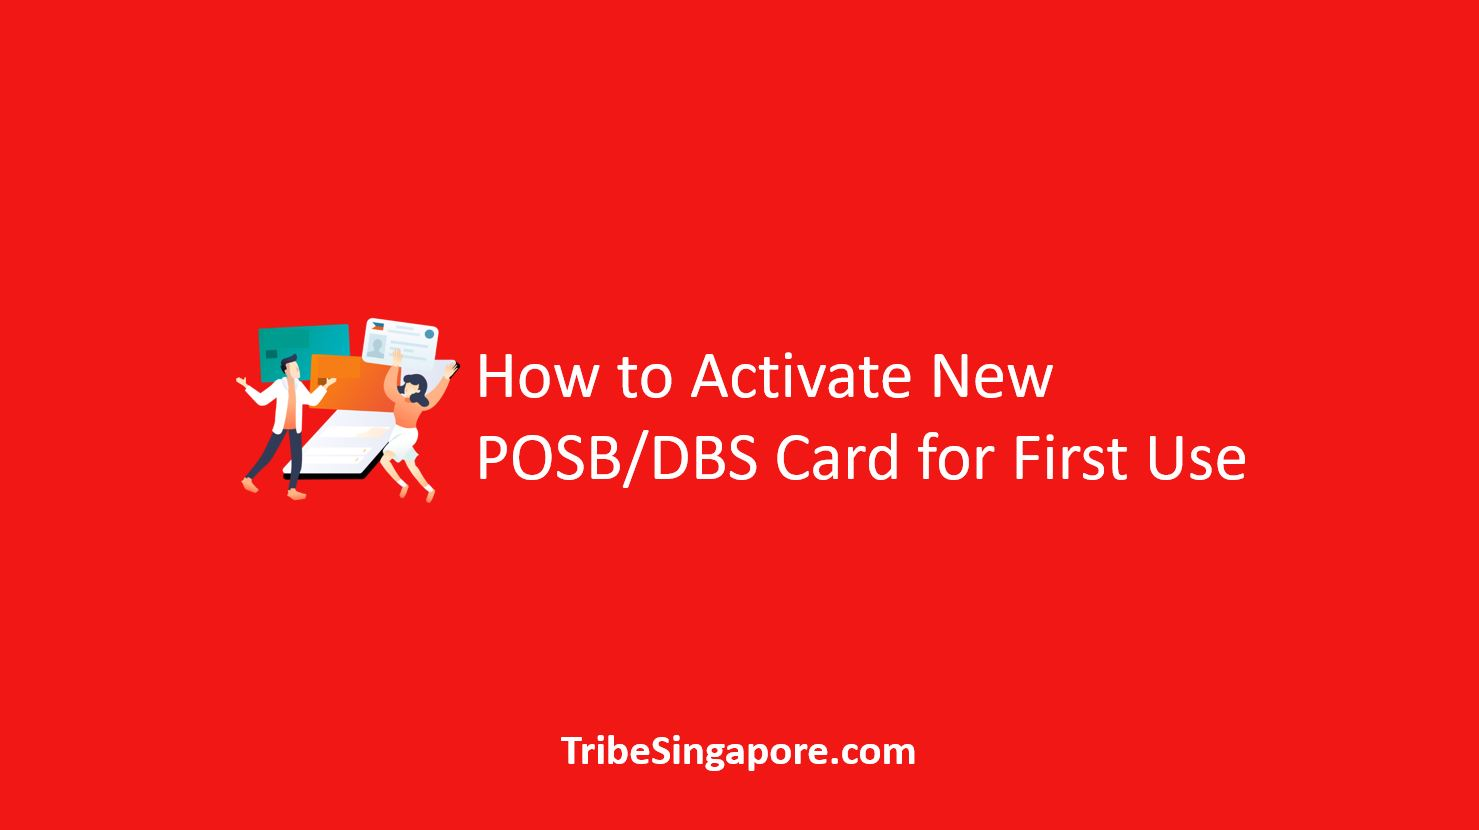 How to Activate New POSB/DBS Card for First Use